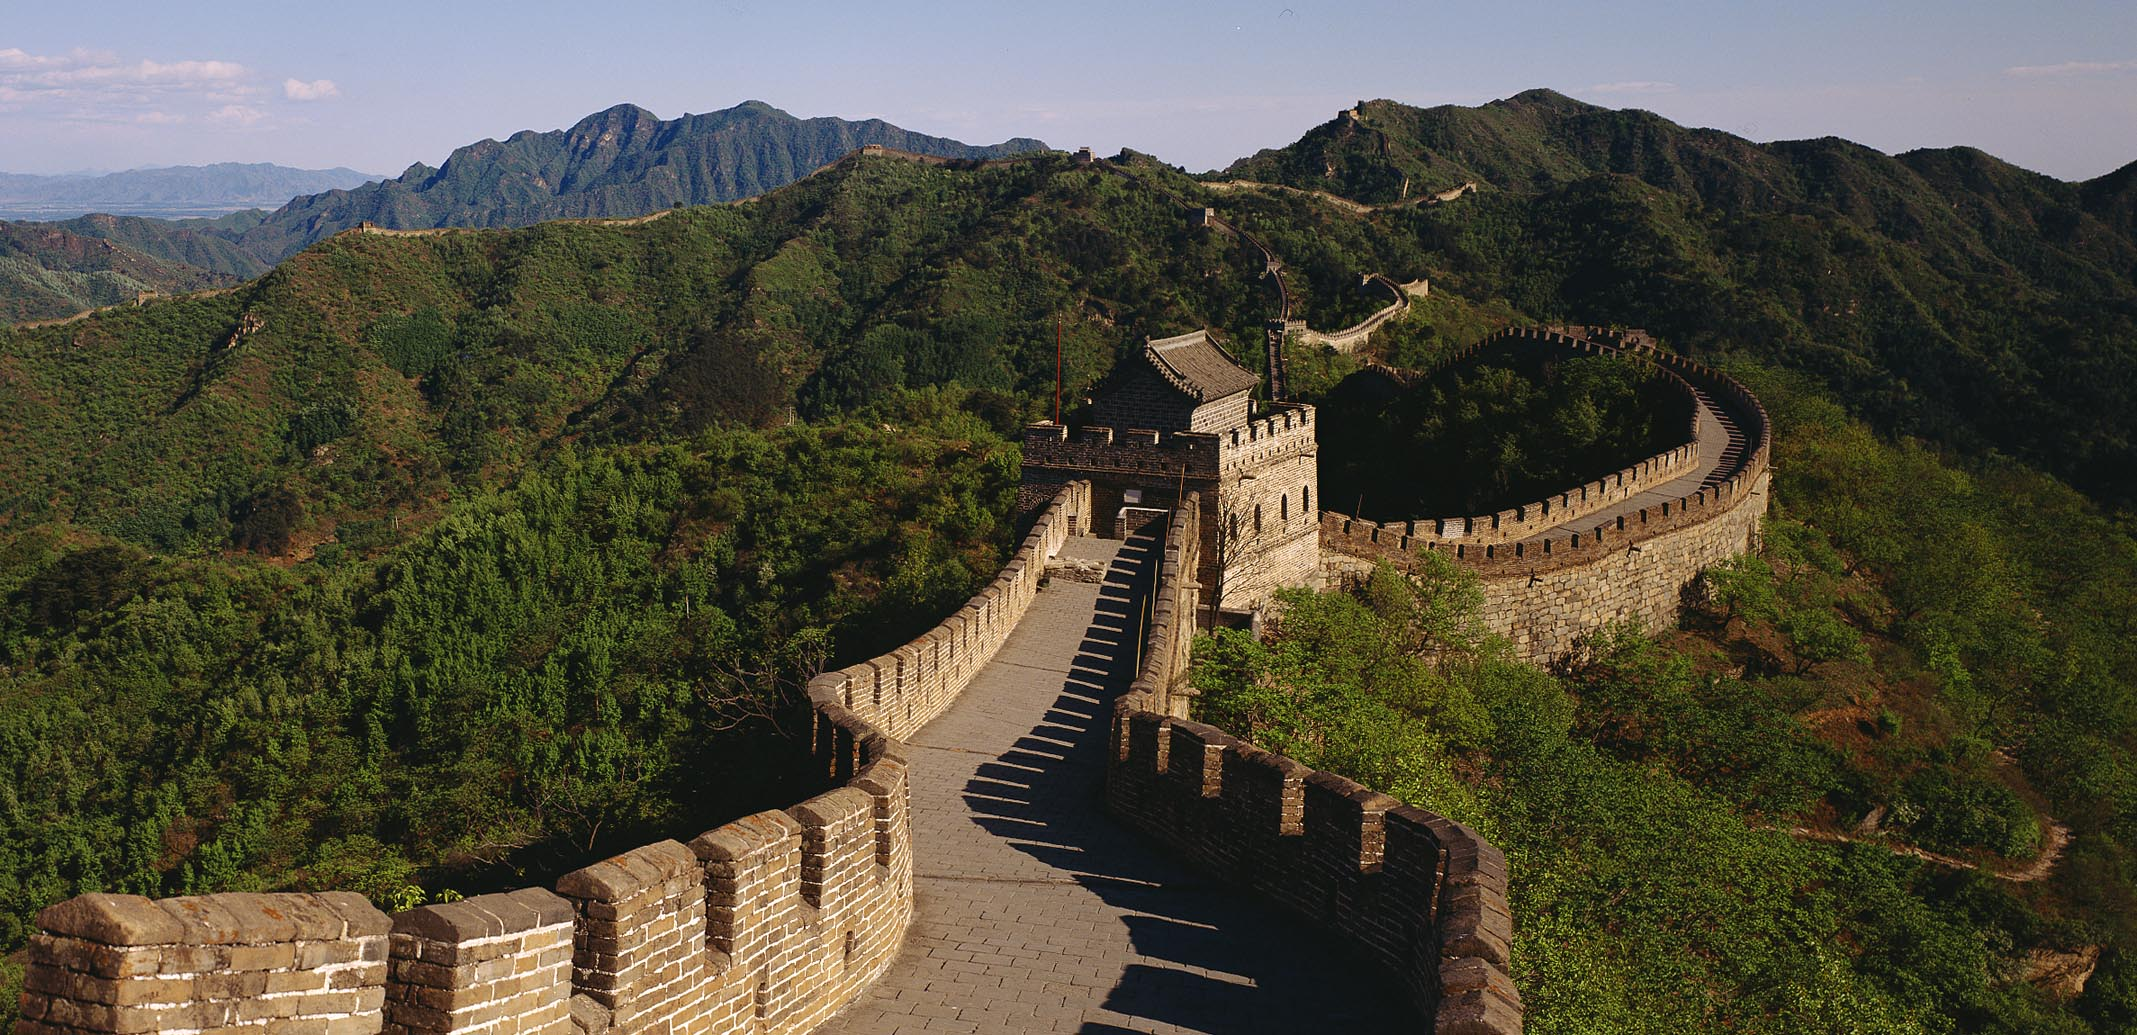 7 Fascinating Great Wall Of China Facts